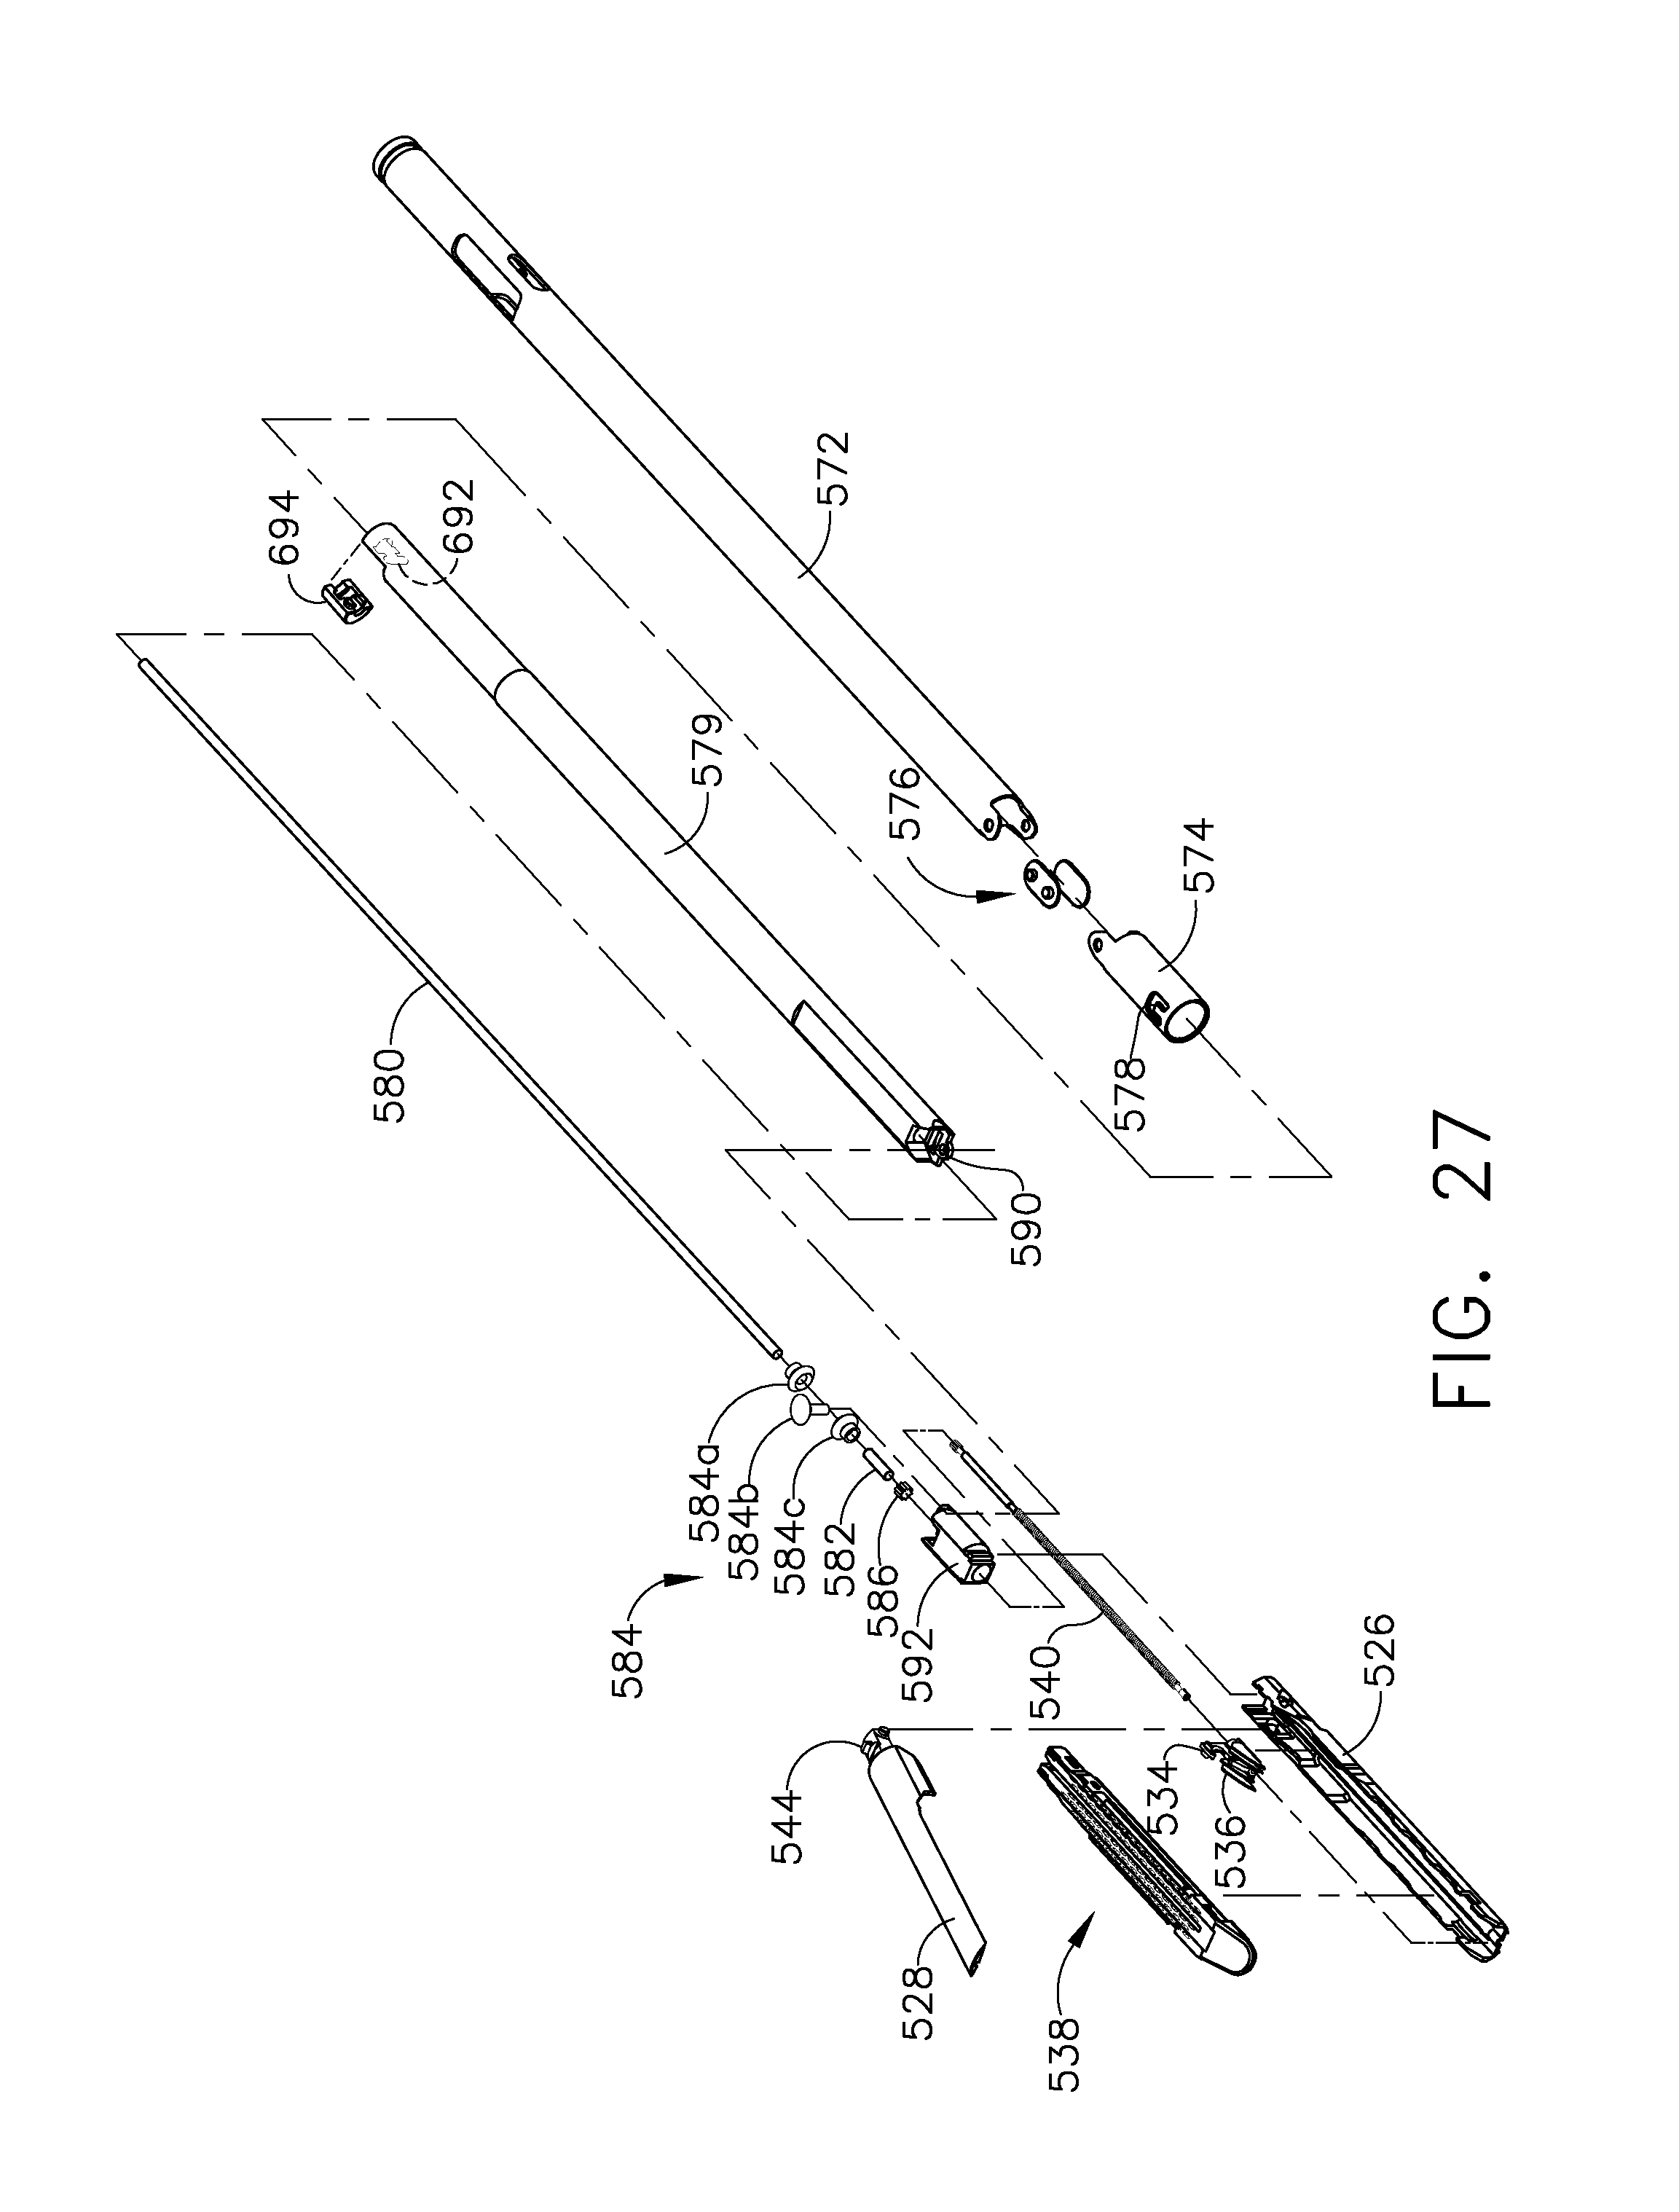 Us8840603b2 surgical instrument with wireless munication between control unit and sensor transponders patents